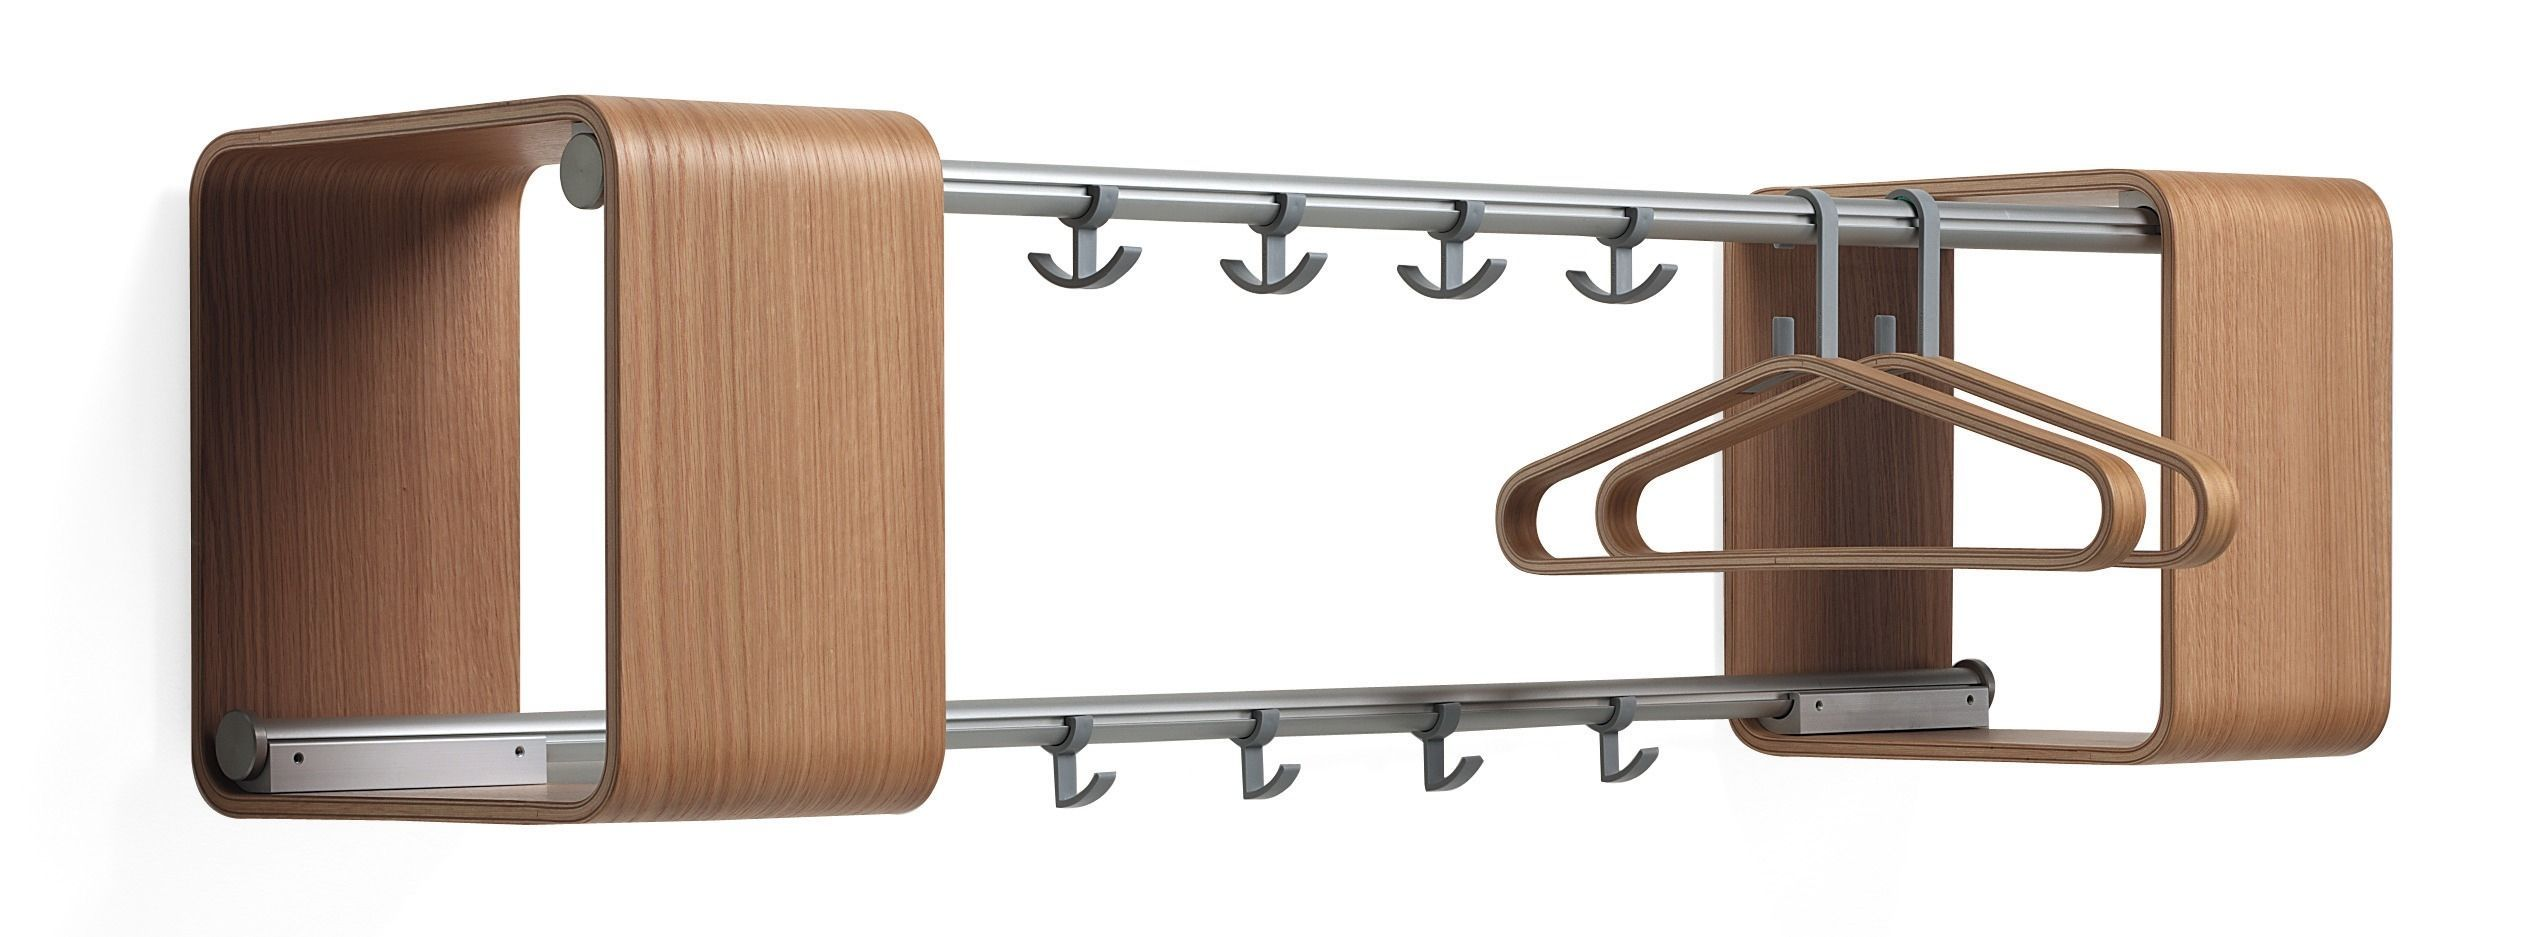 Cool Coat Rack For Wall Mounting Inspiring Design Ideas